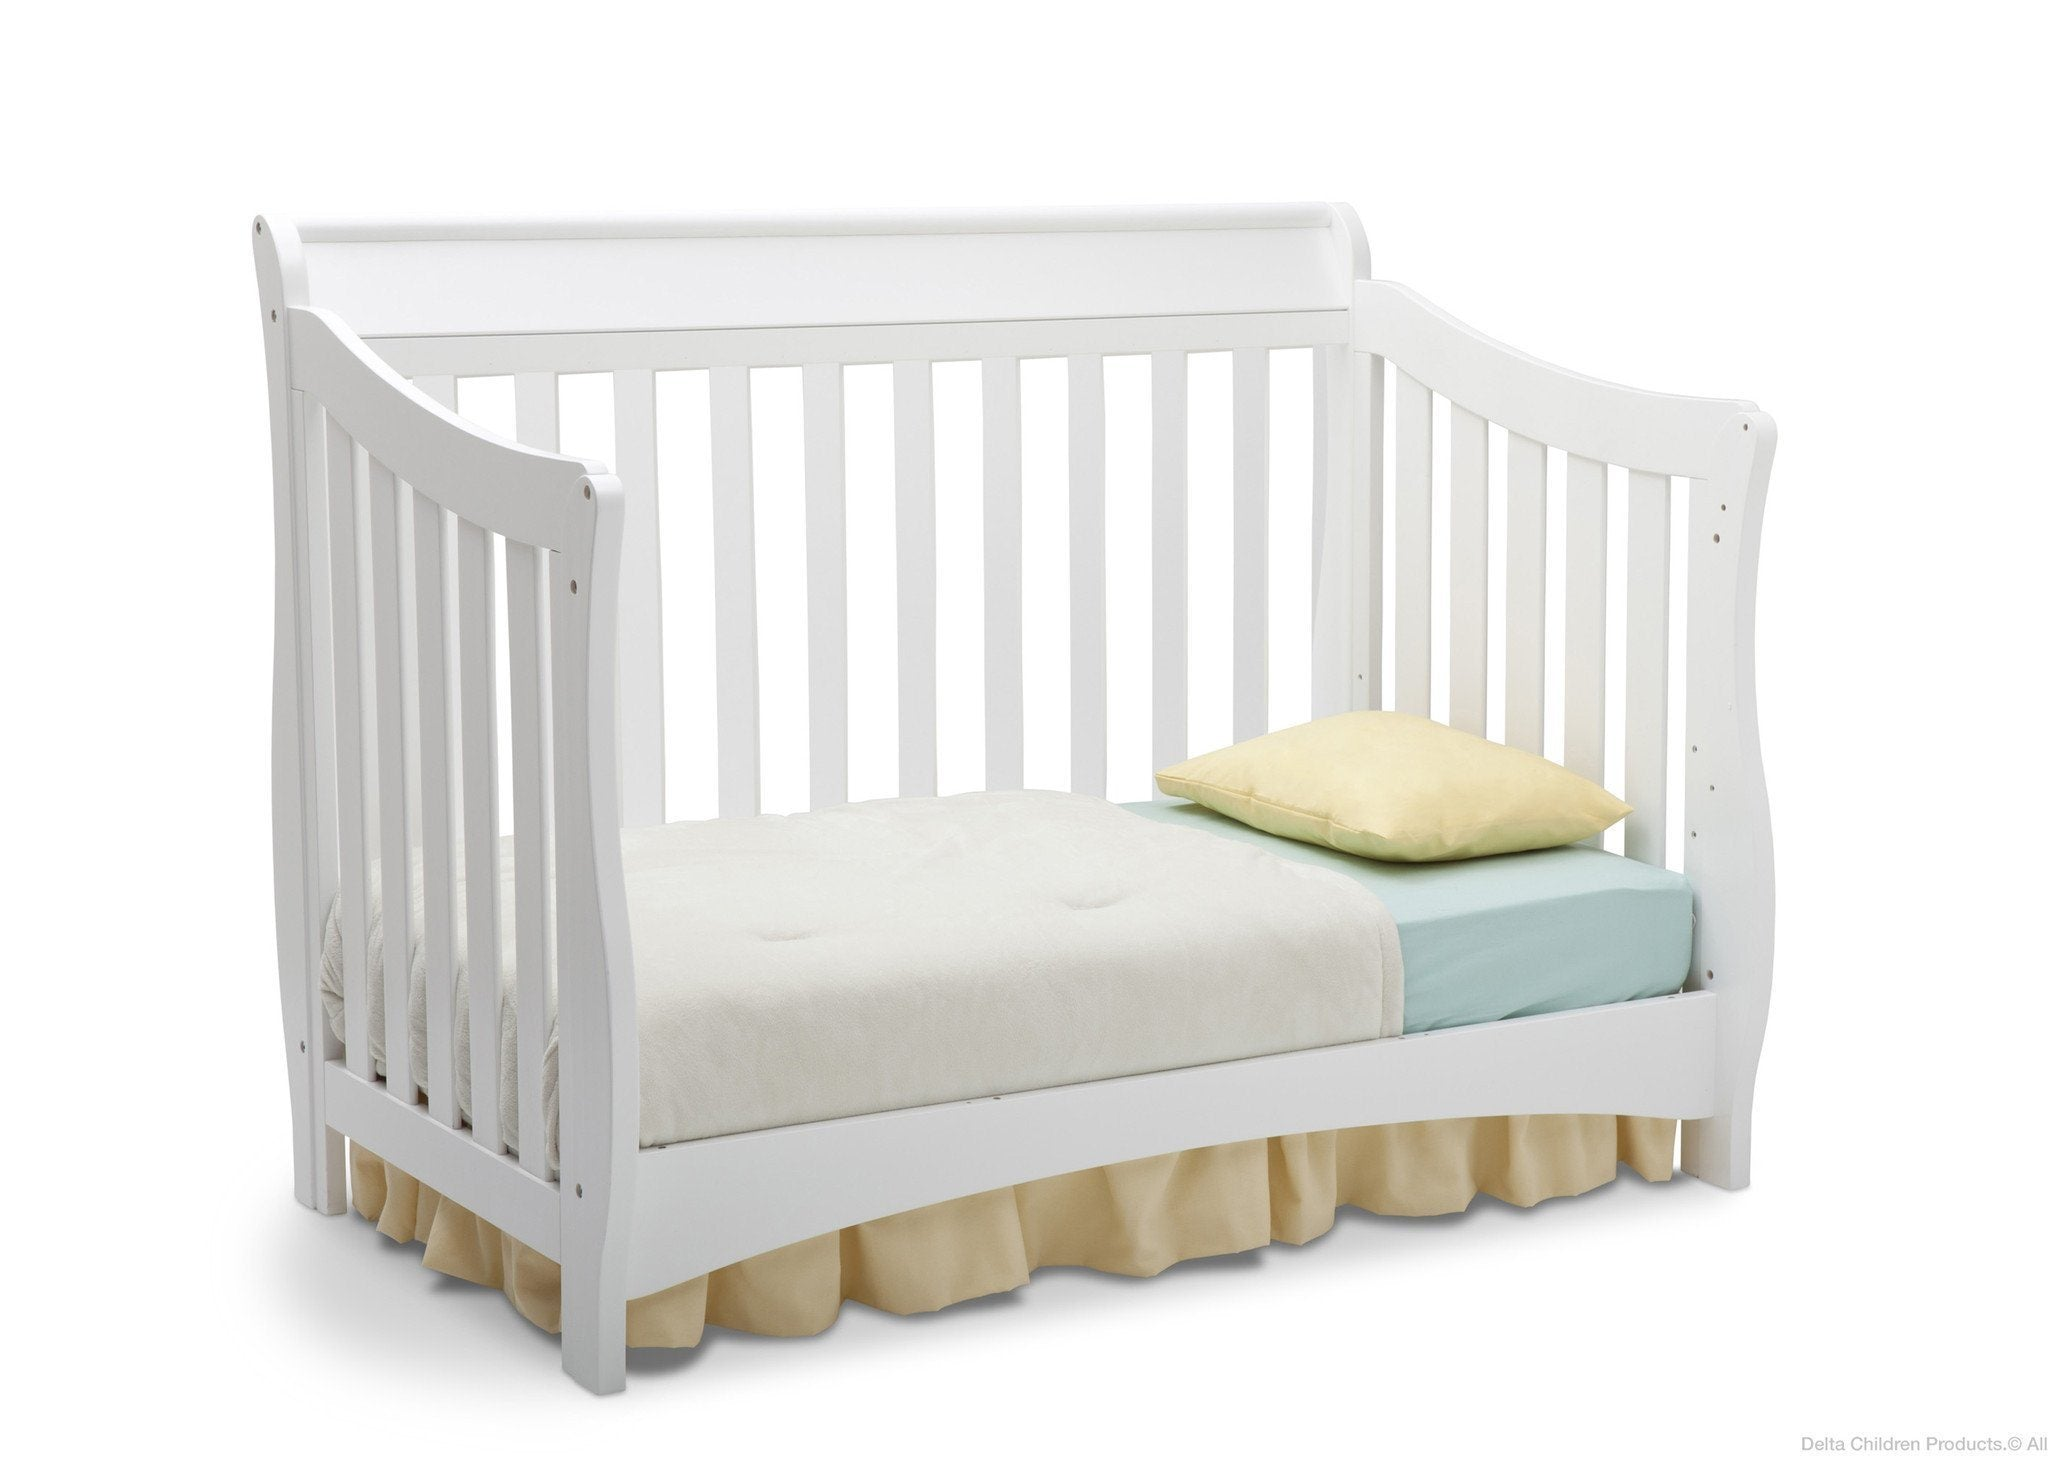 Delta Children White (100) Bentley 'S' Series 4-in-1 Crib, Toddler Bed Conversion a4a